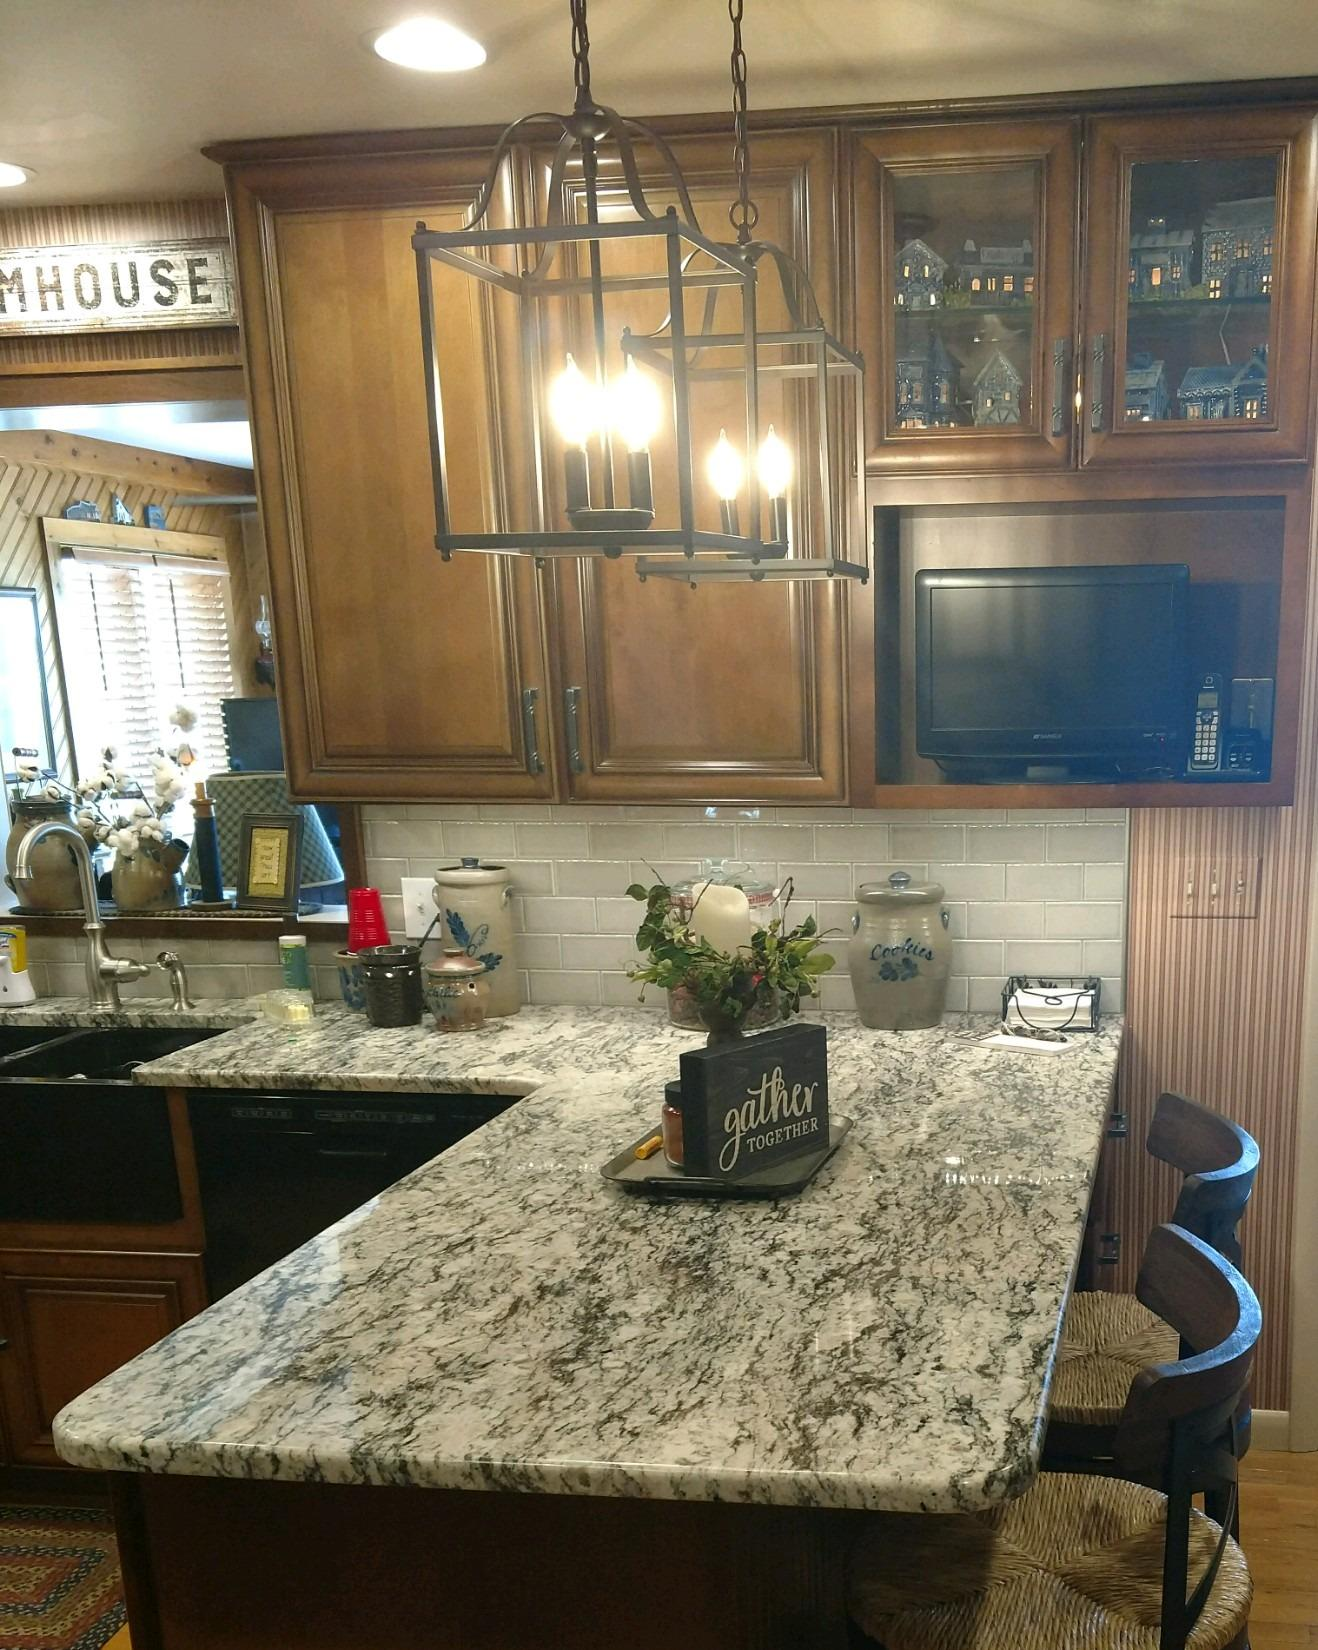 Accurate Upgrades Home Improvements LLC image 4